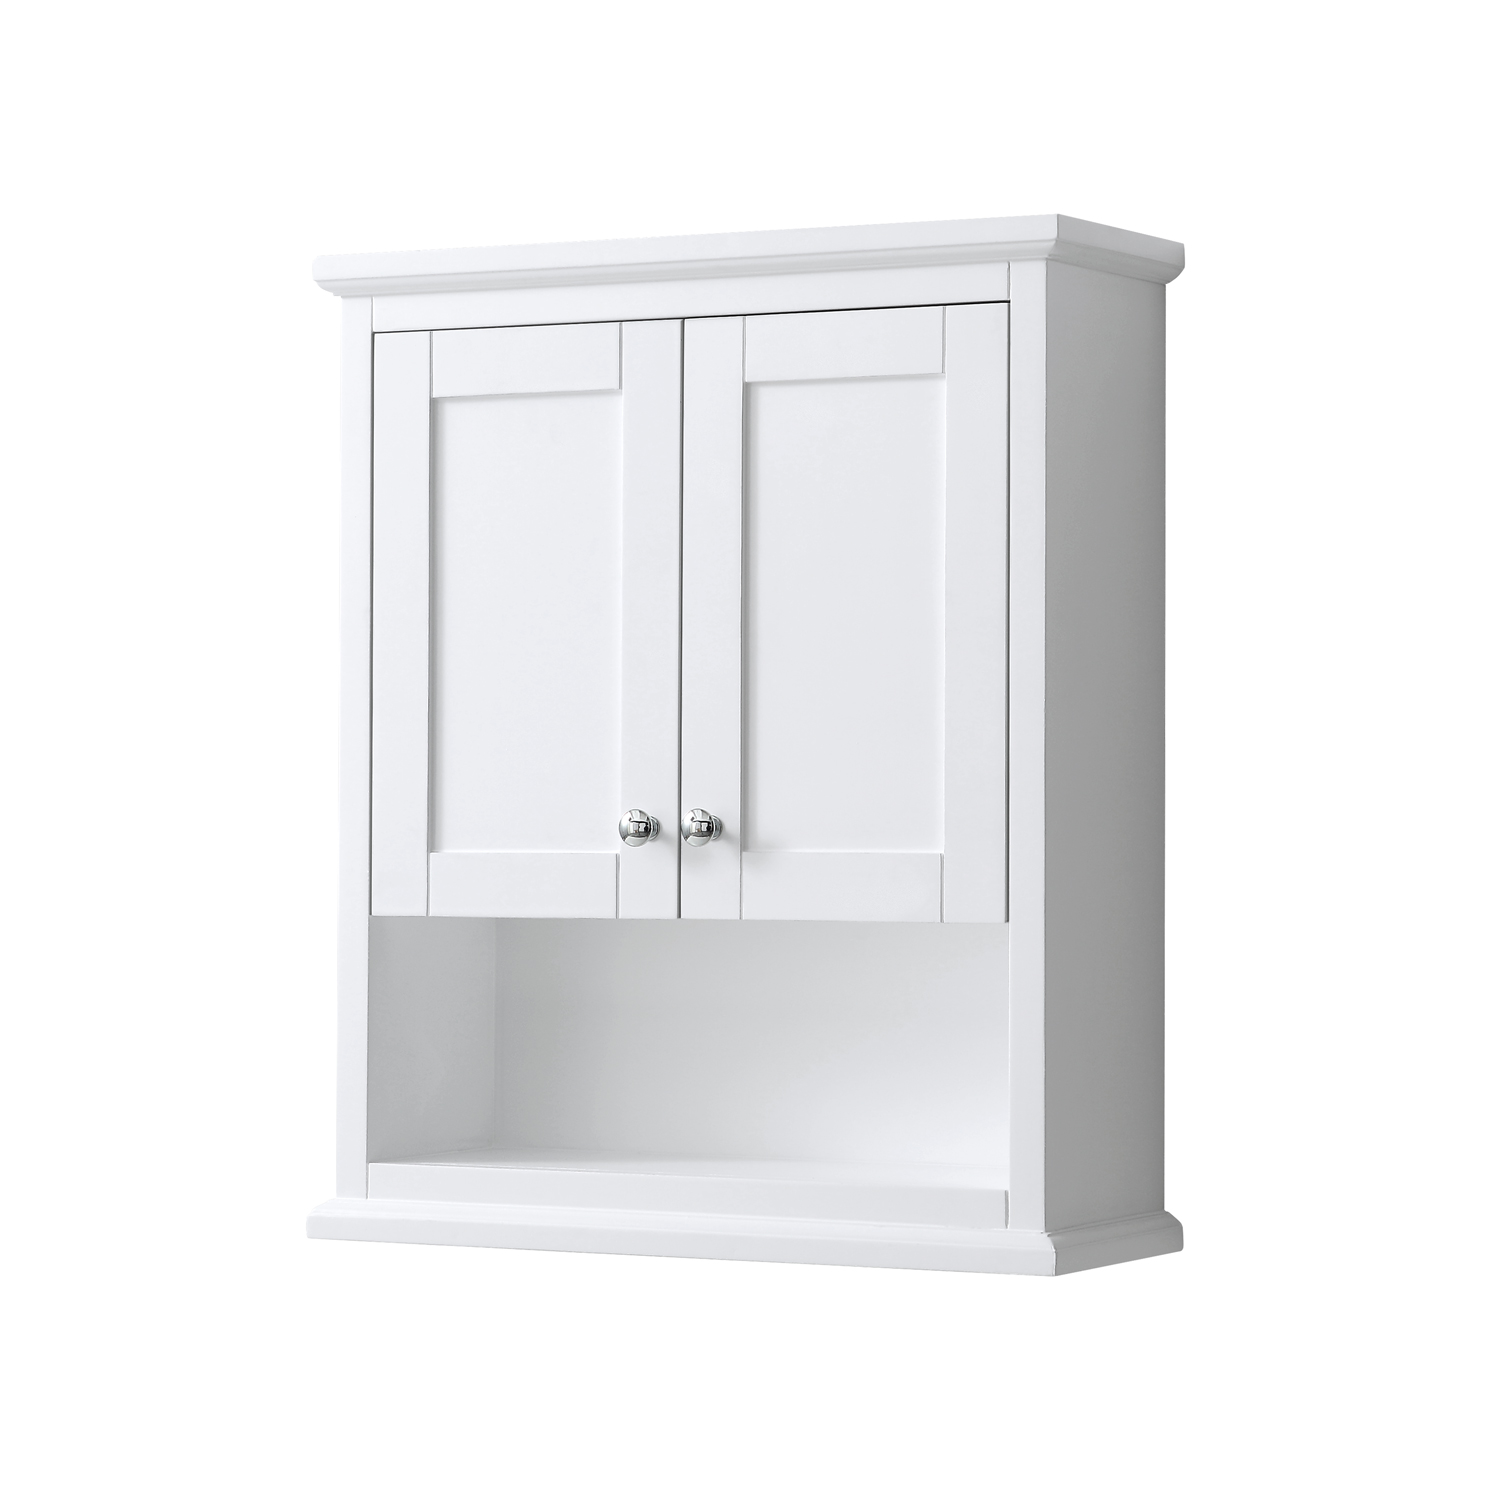 avery over-toilet wall cabinet - white | free shipping